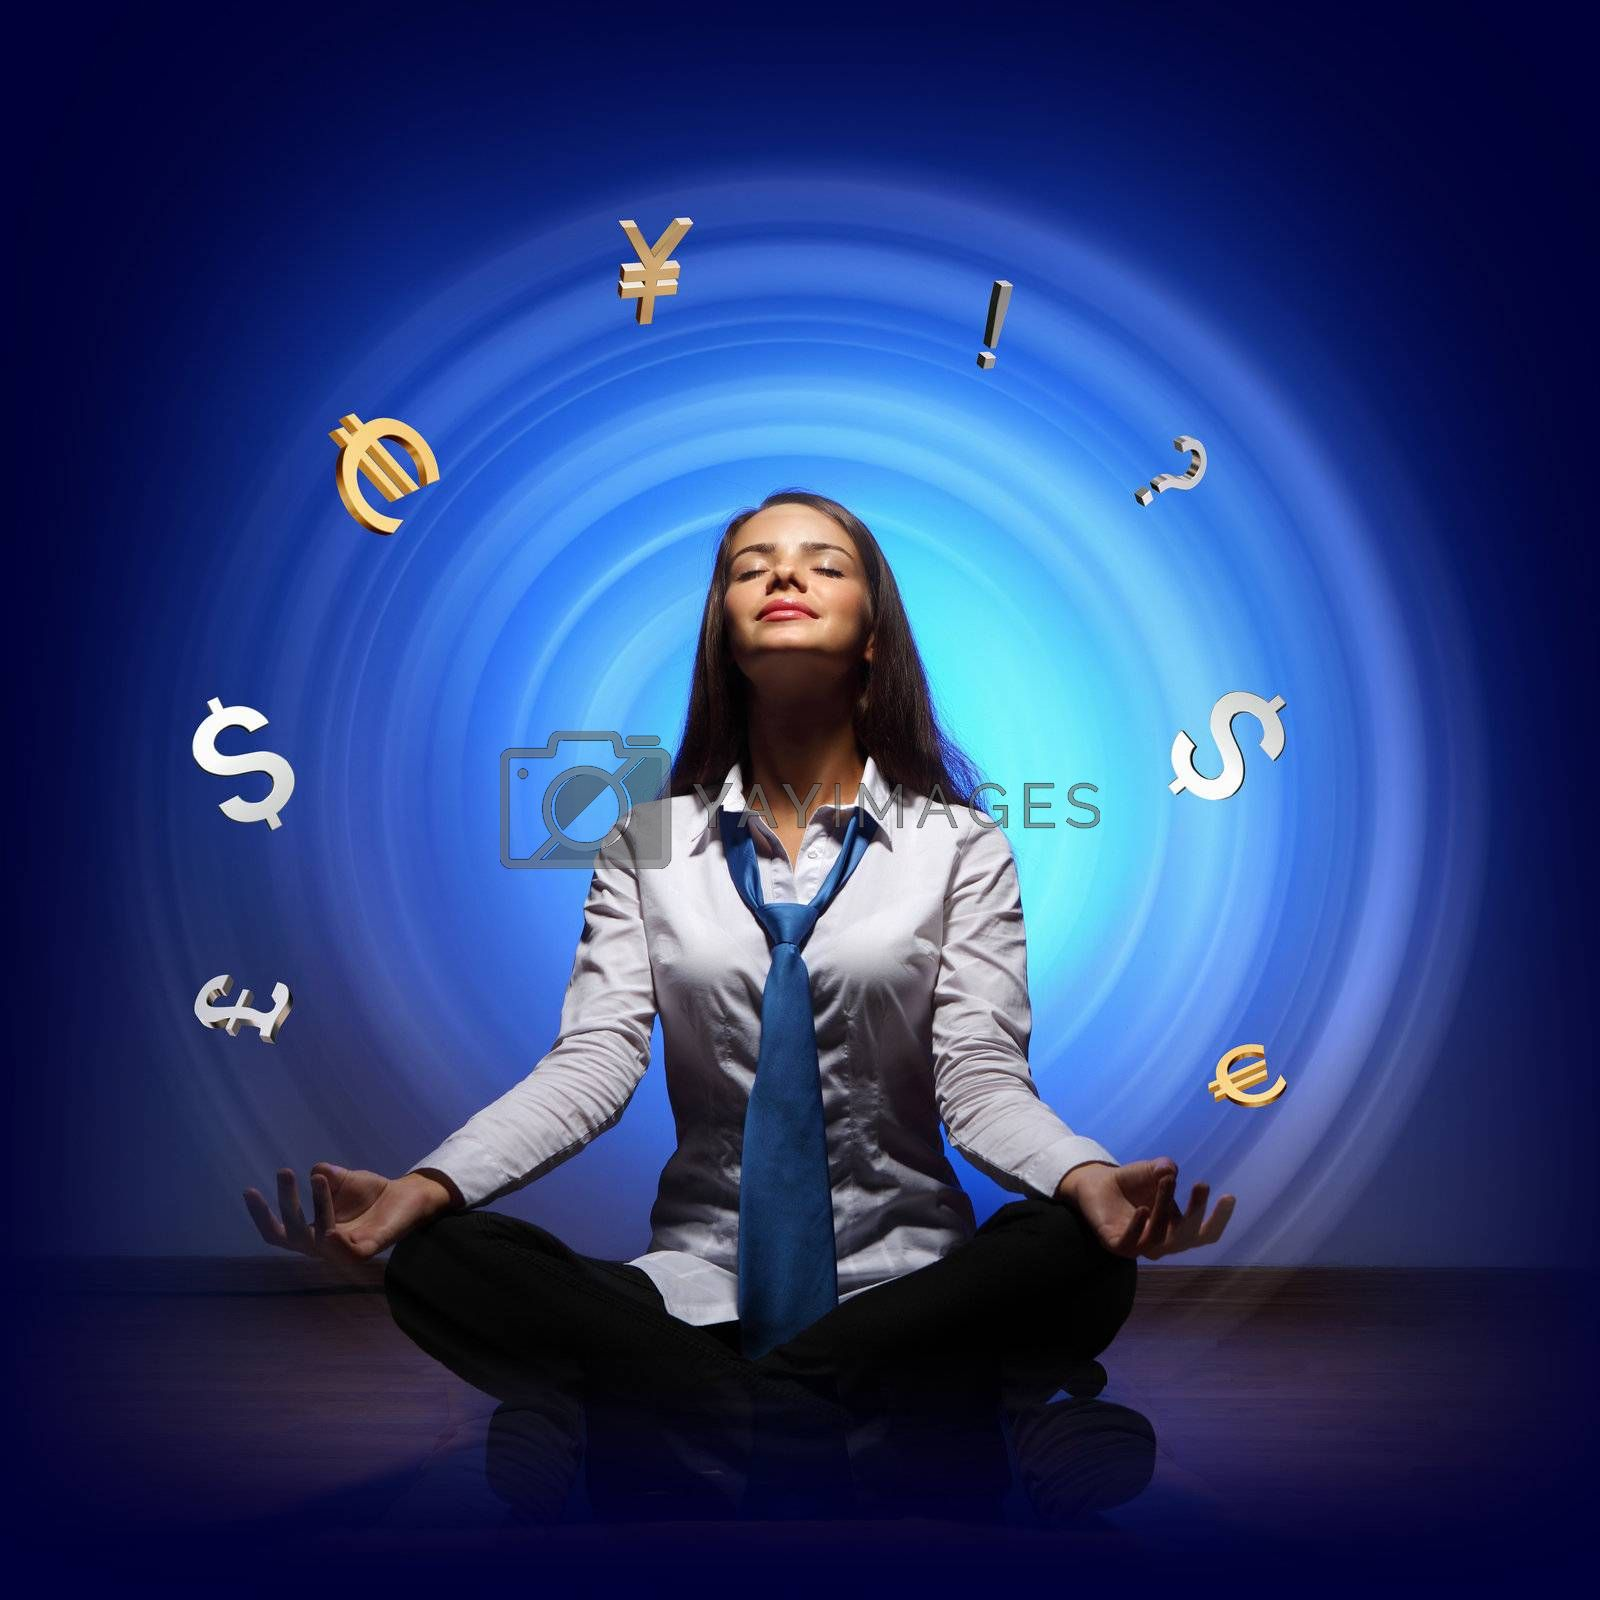 Businesswoman with financial symbols around her on the background